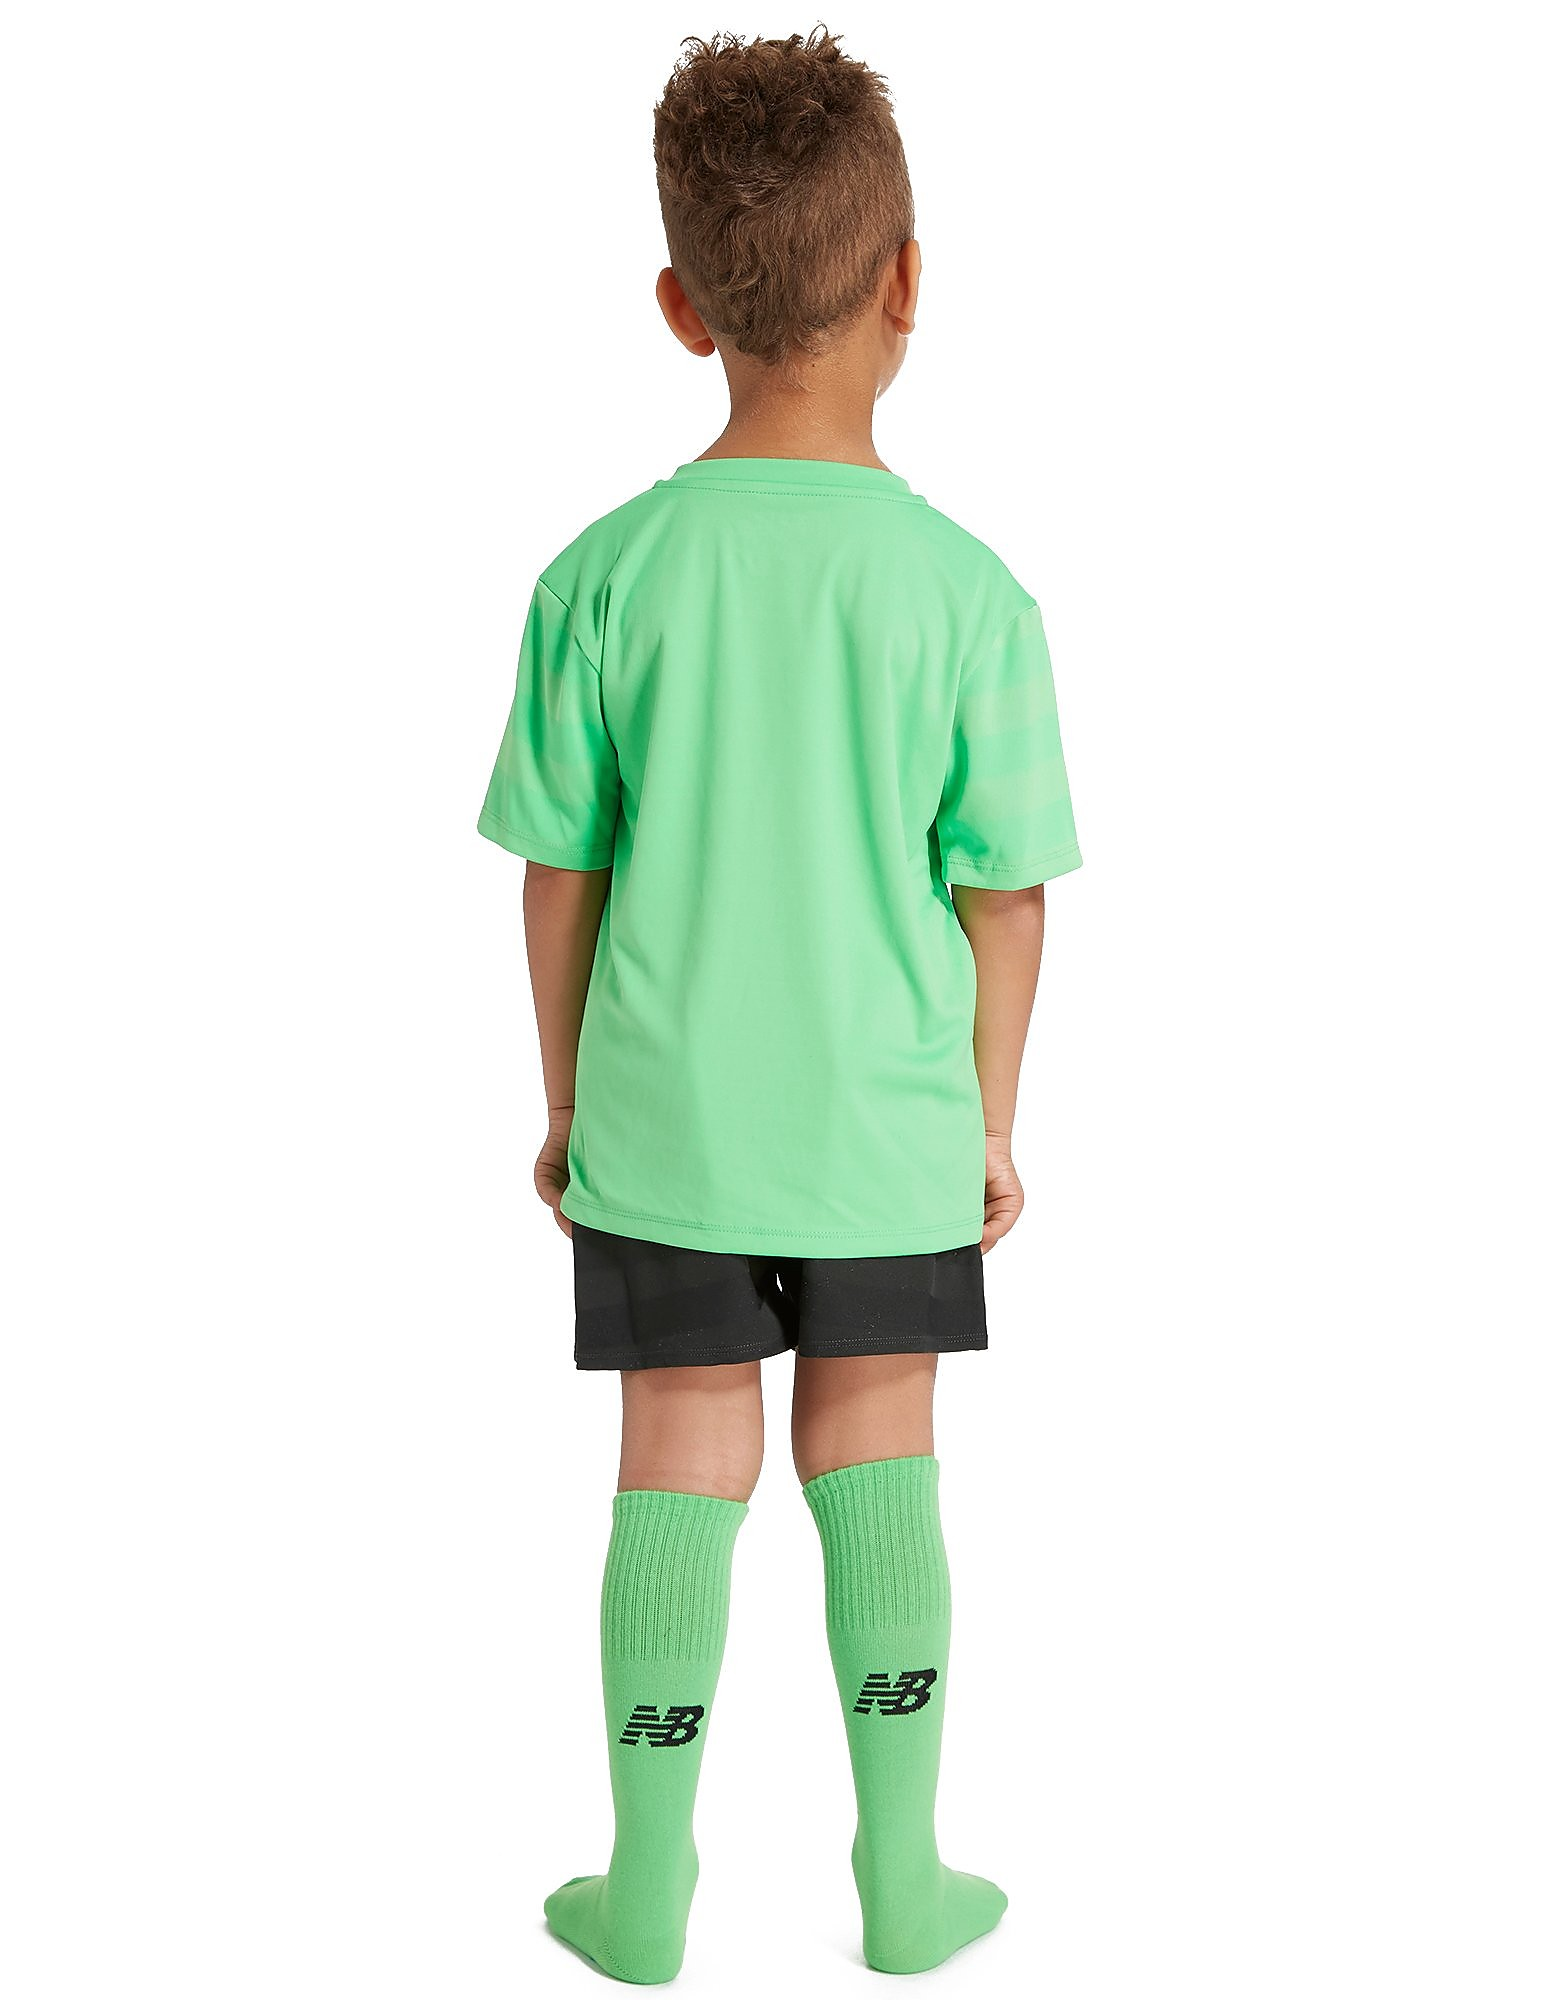 New Balance Celtic 2017/18 Third Kit Children